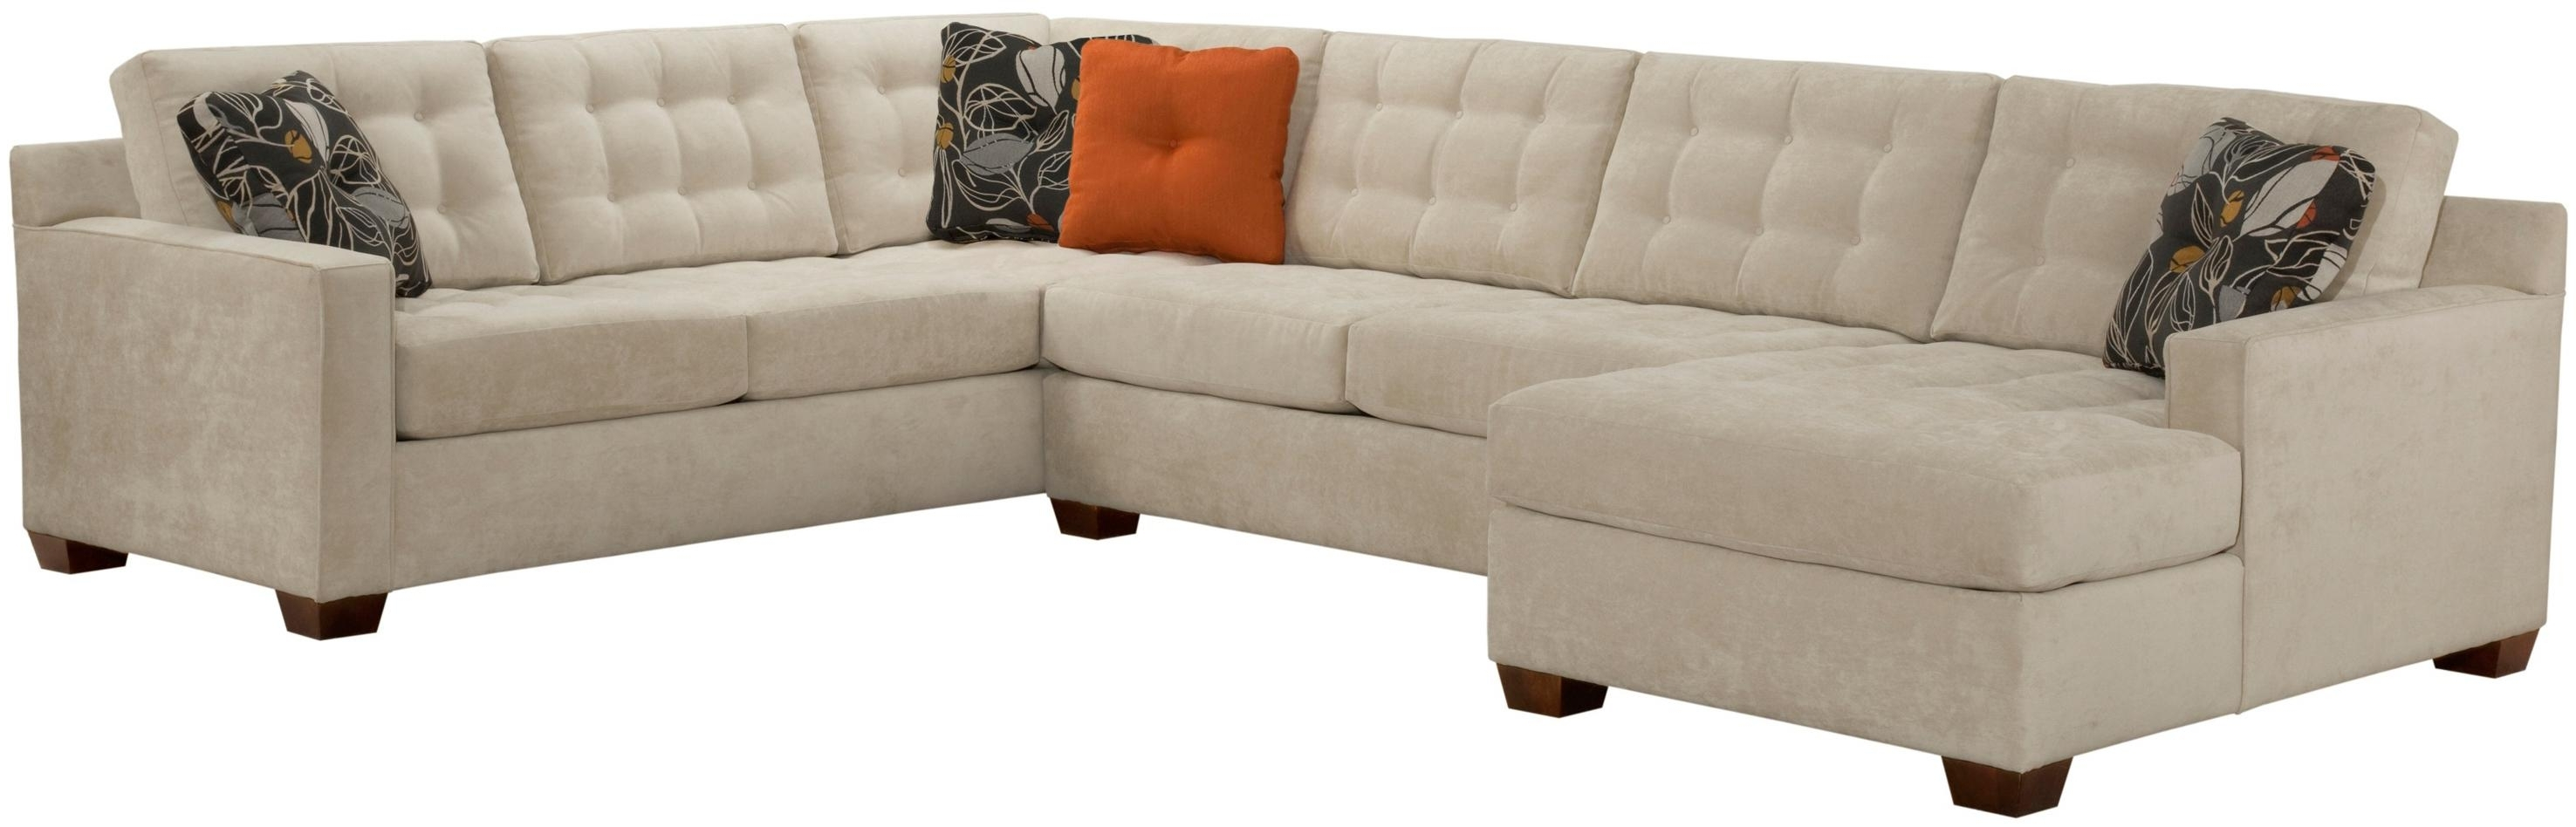 Broyhill Sectional Sofas Throughout Newest Broyhill Furniture Tribeca Contemporary Sectional Sofa With Left (View 9 of 20)